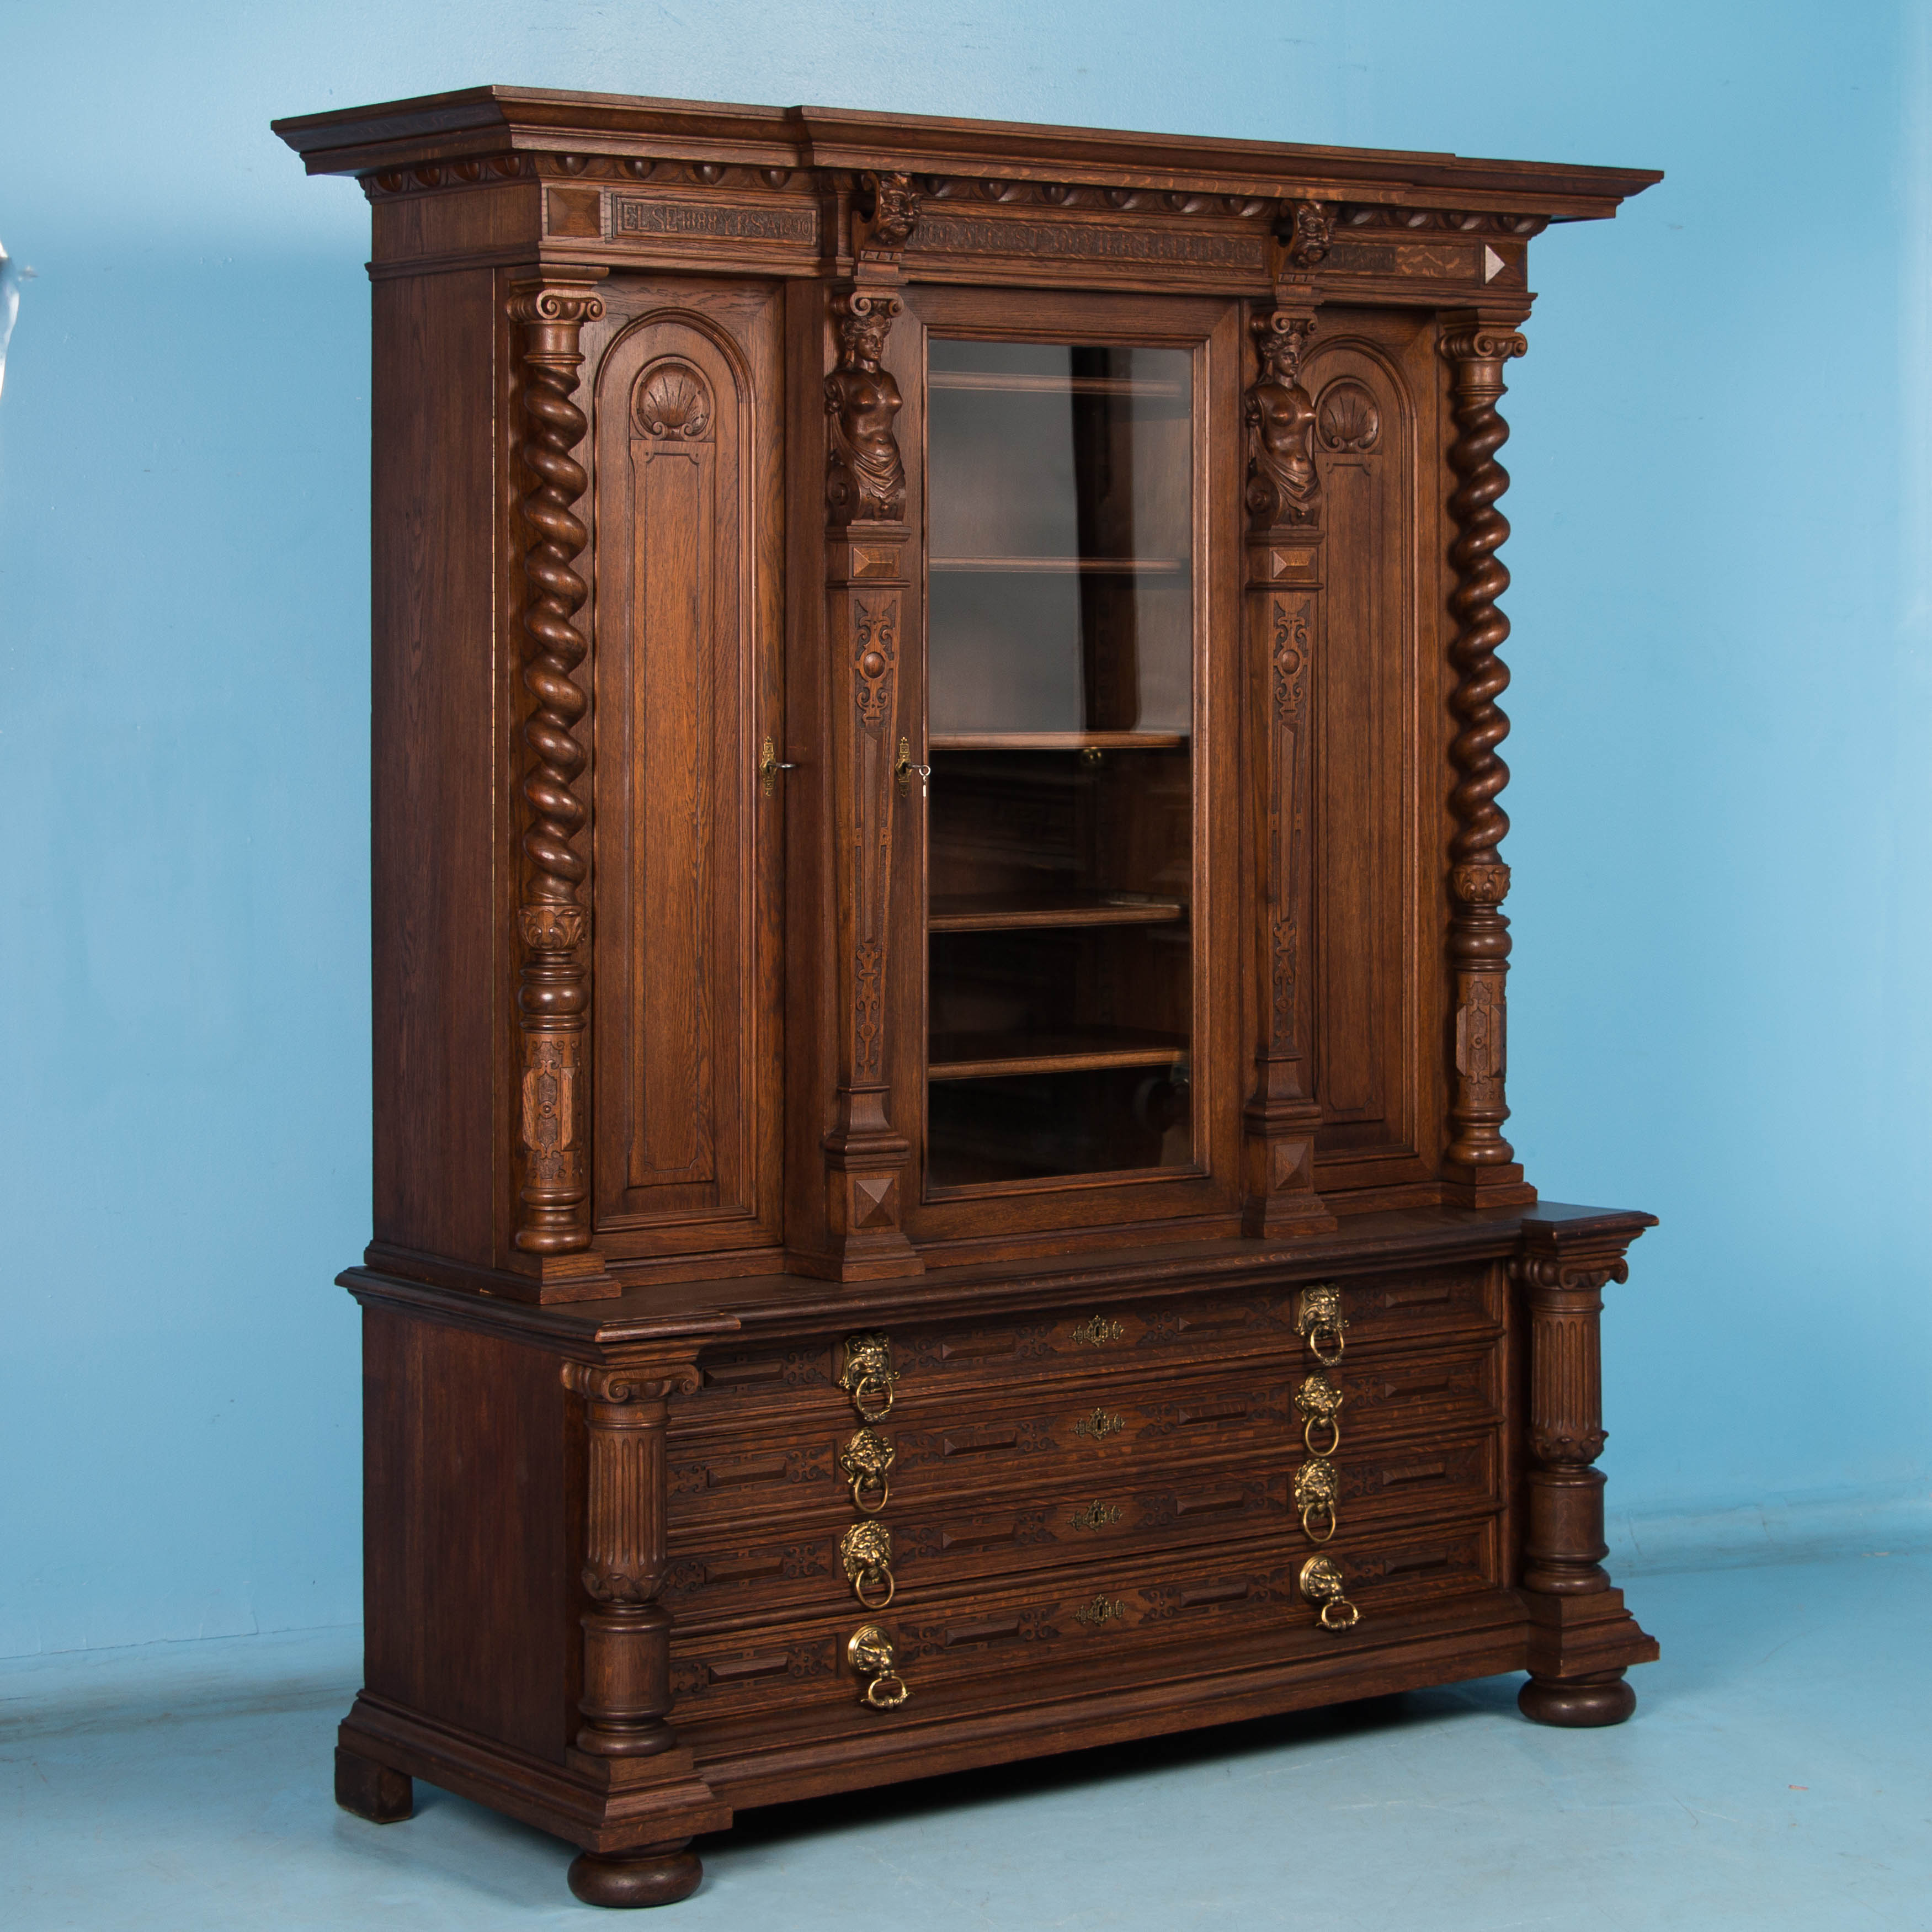 cabinets of beauty mahogany blog furniture china and antique the cabinet integrity old vintage